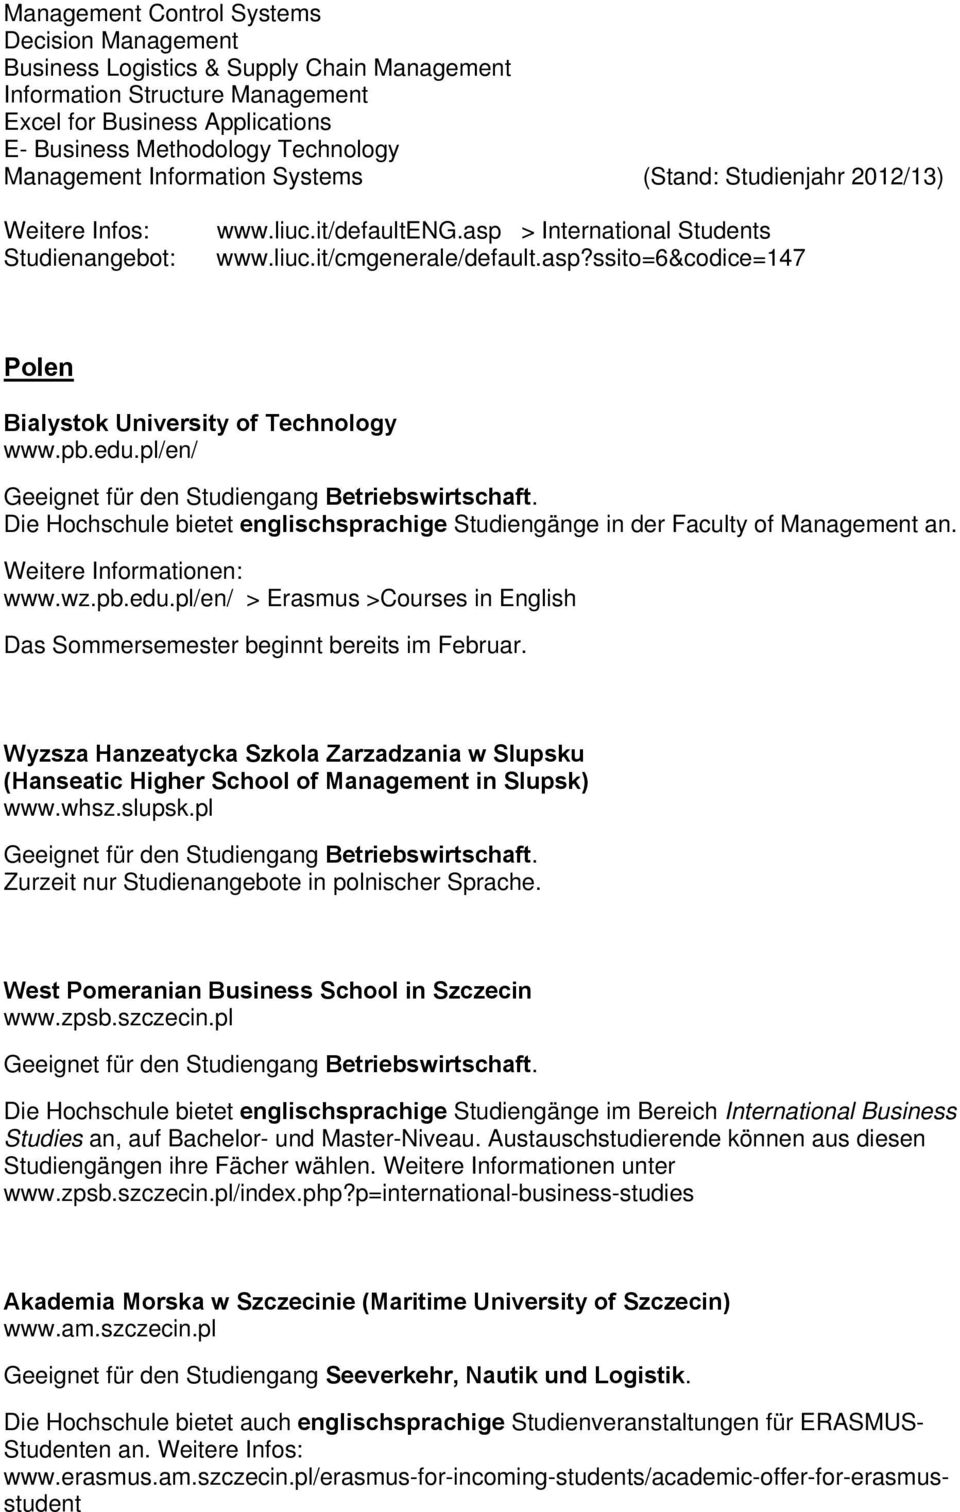 pb.edu.pl/en/ Die Hochschule bietet englischsprachige Studiengänge in der Faculty of Management an. www.wz.pb.edu.pl/en/ > Erasmus >Courses in English Das Sommersemester beginnt bereits im Februar.